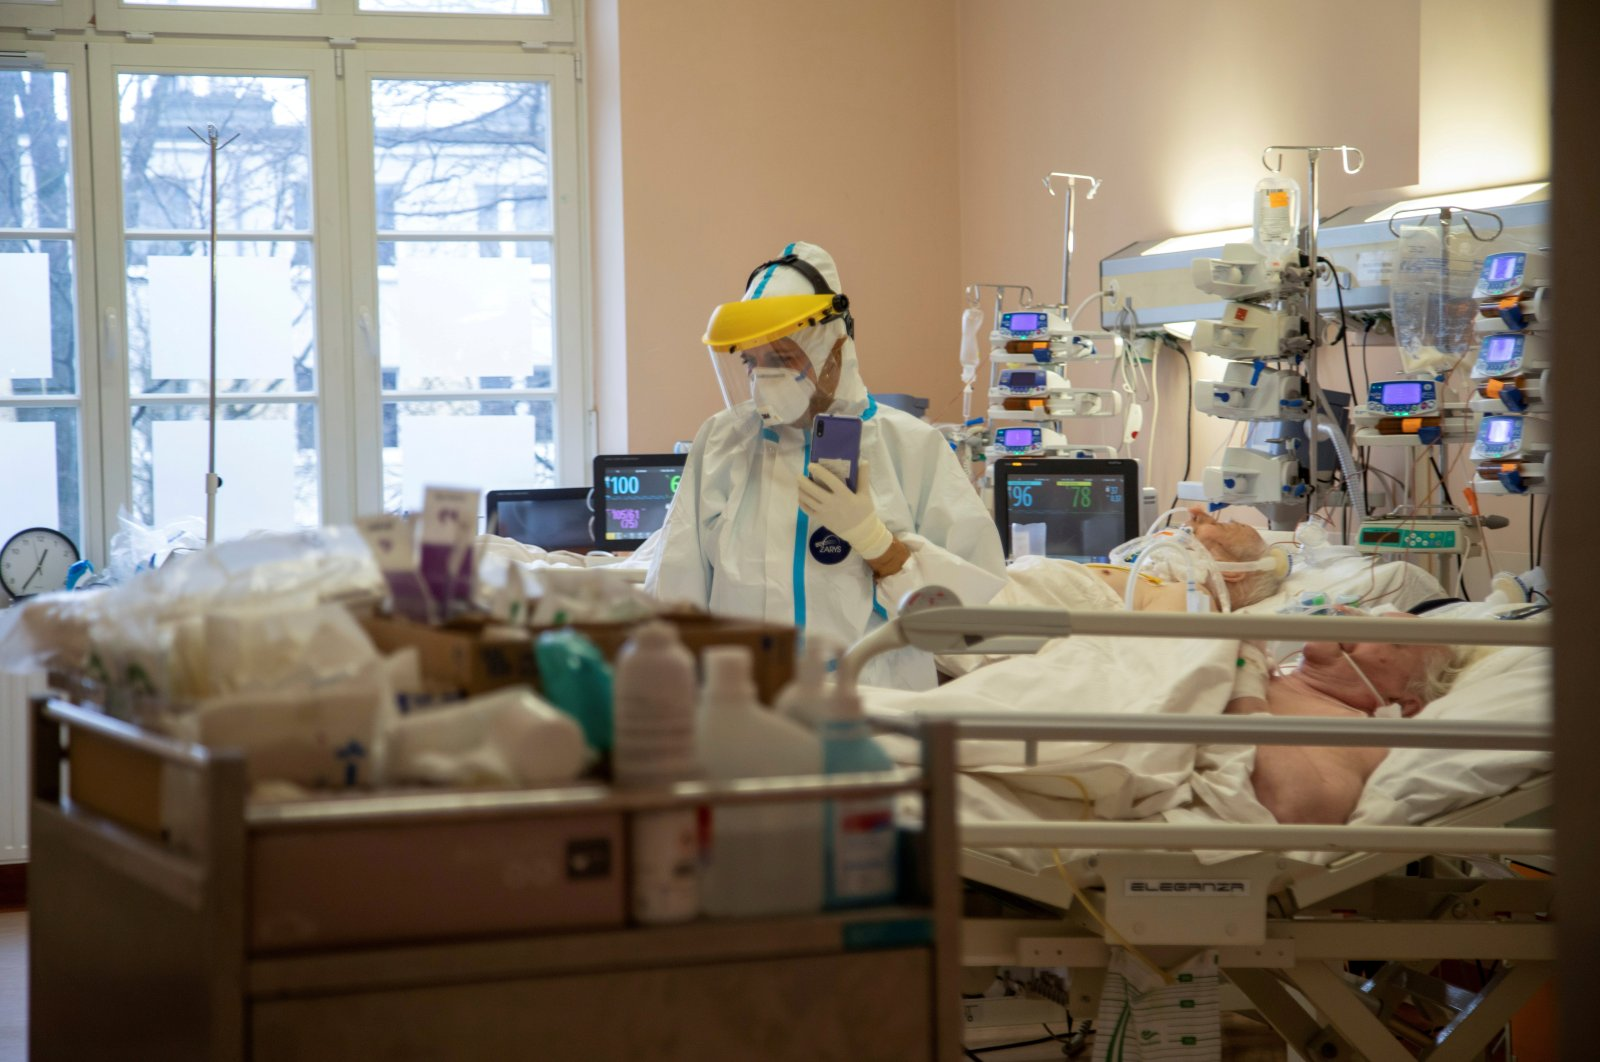 A medical worker attends to patients inside the coronavirus disease (COVID-19) ward at the University Clinical Hospital in Olsztyn, Poland, March 2, 2021. (REUTERS)